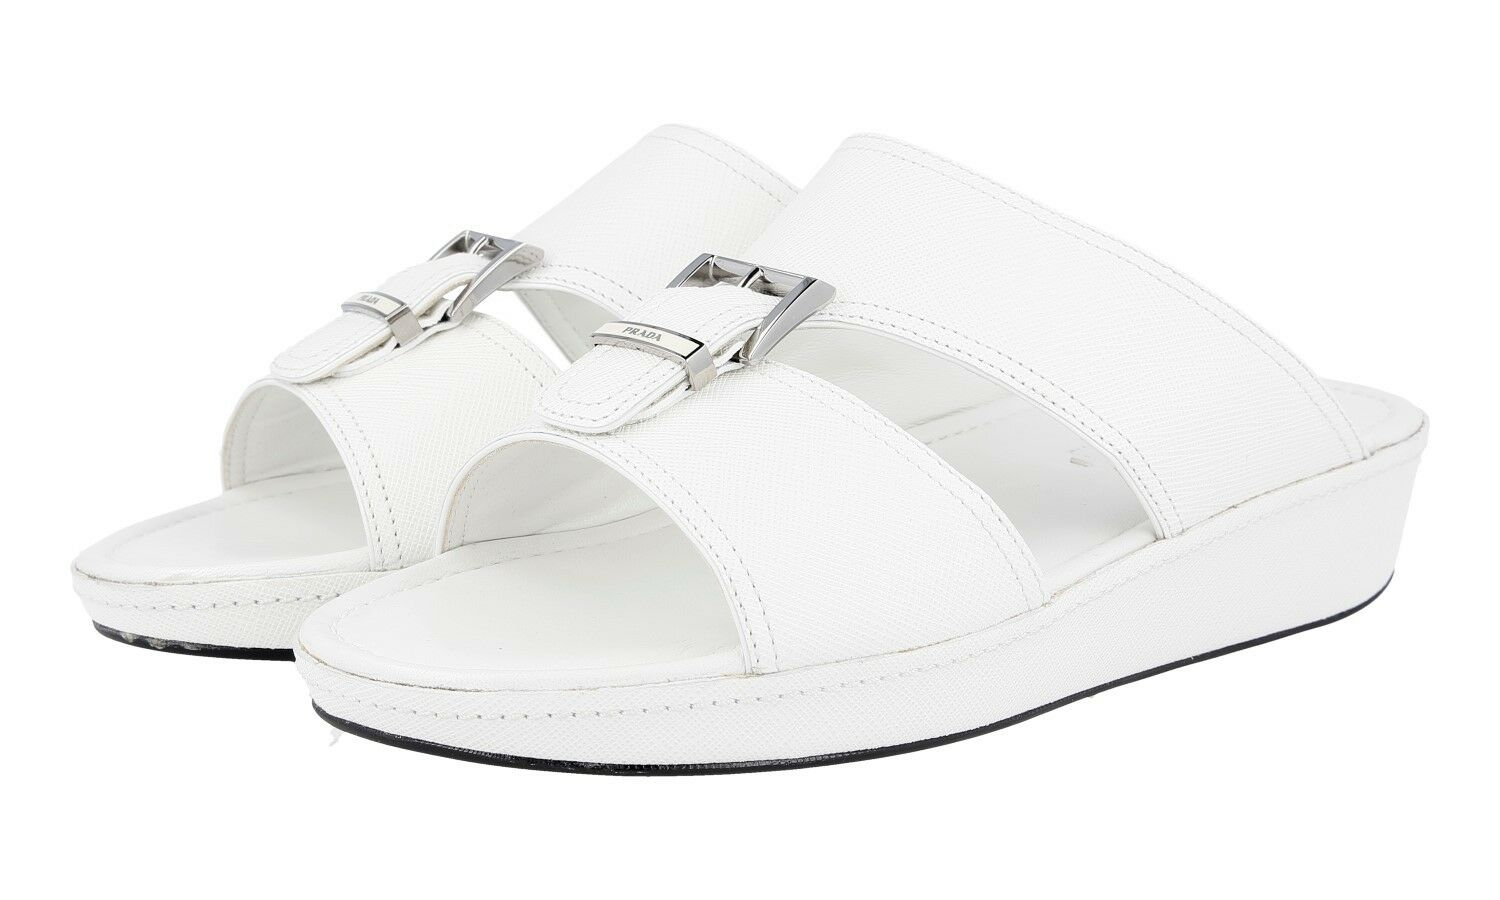 AUTH LUXURY PRADA SAFFIANO SANDALS SHOES 2X2938 WHITE NEW US 8